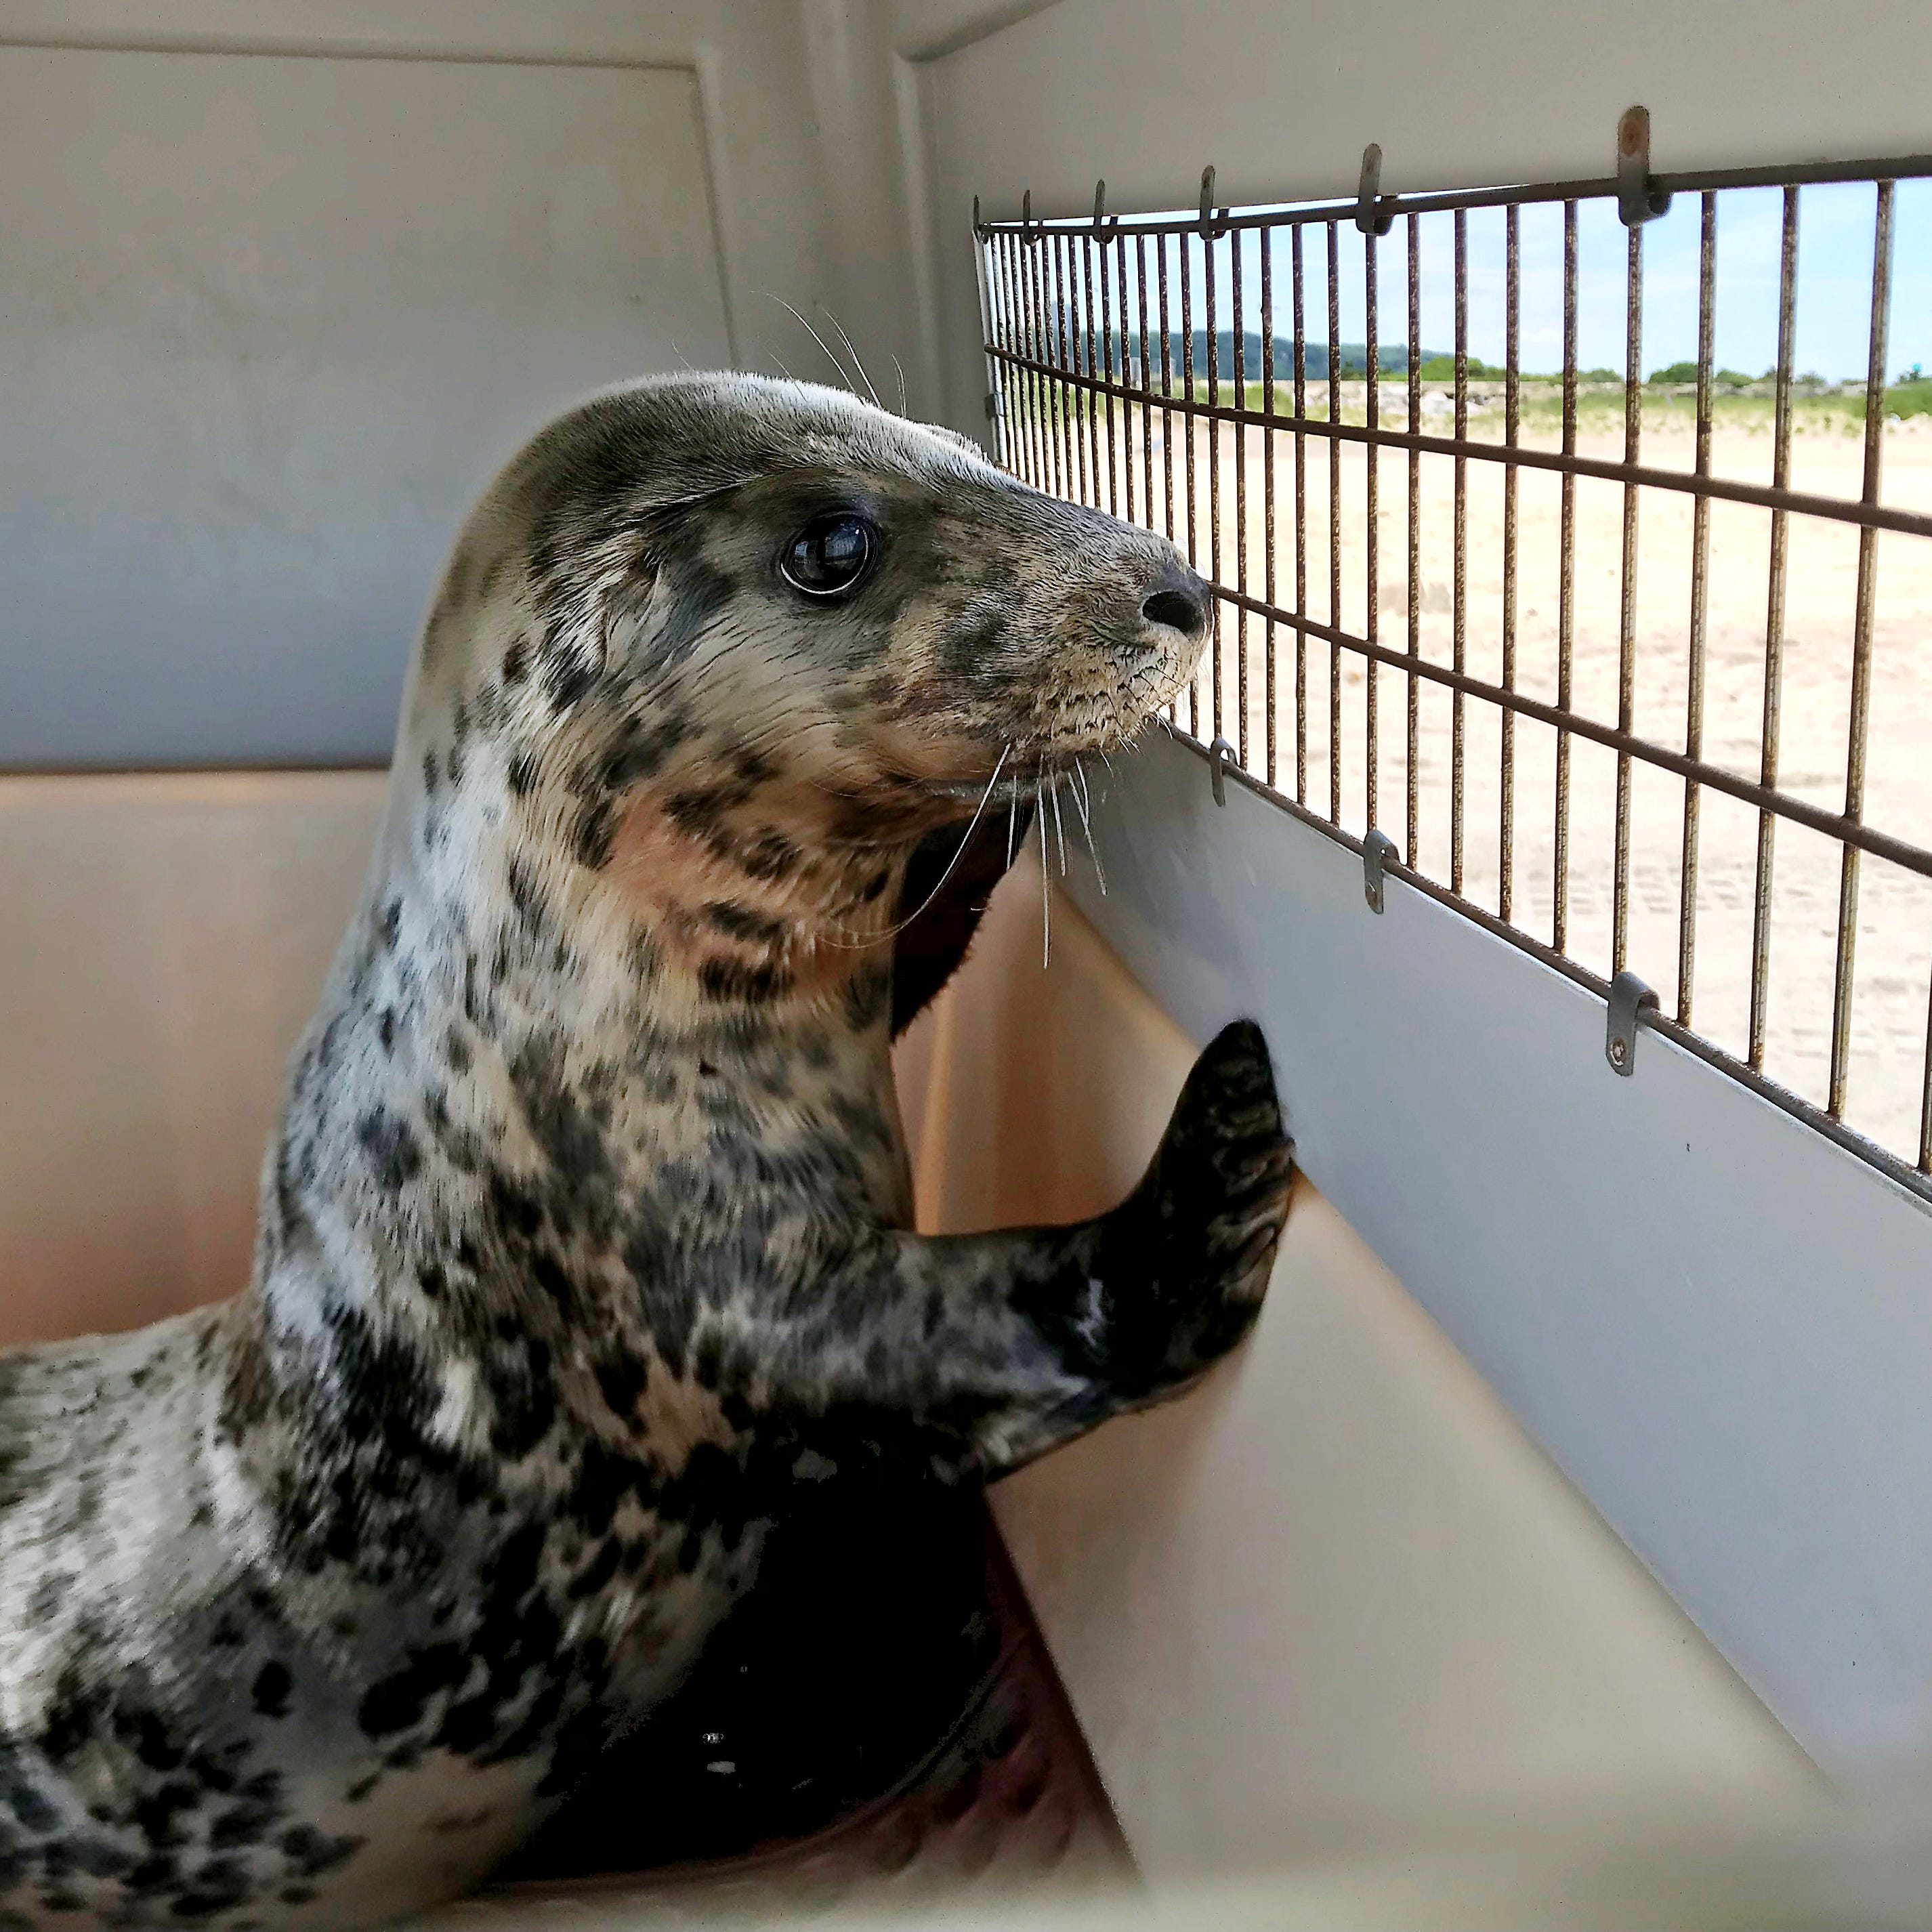 Three seals found in Monmouth County. Only one is alive.